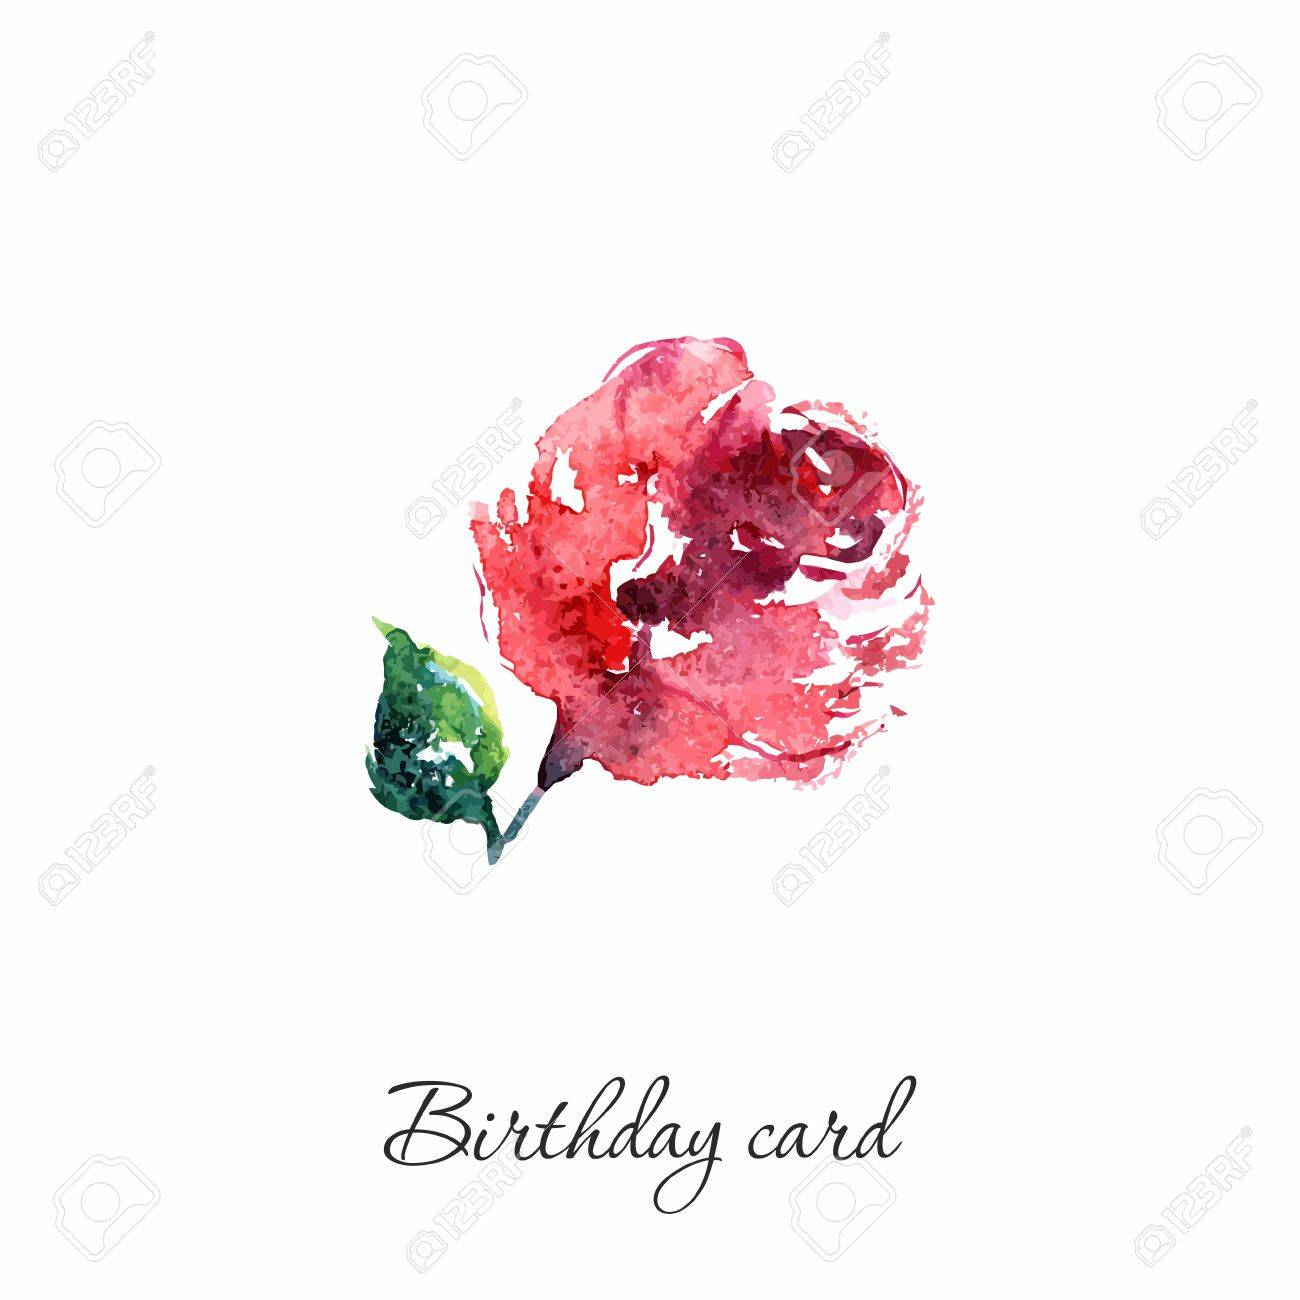 Watercolor Card With Rose Birthday Single Flower Stock Vector